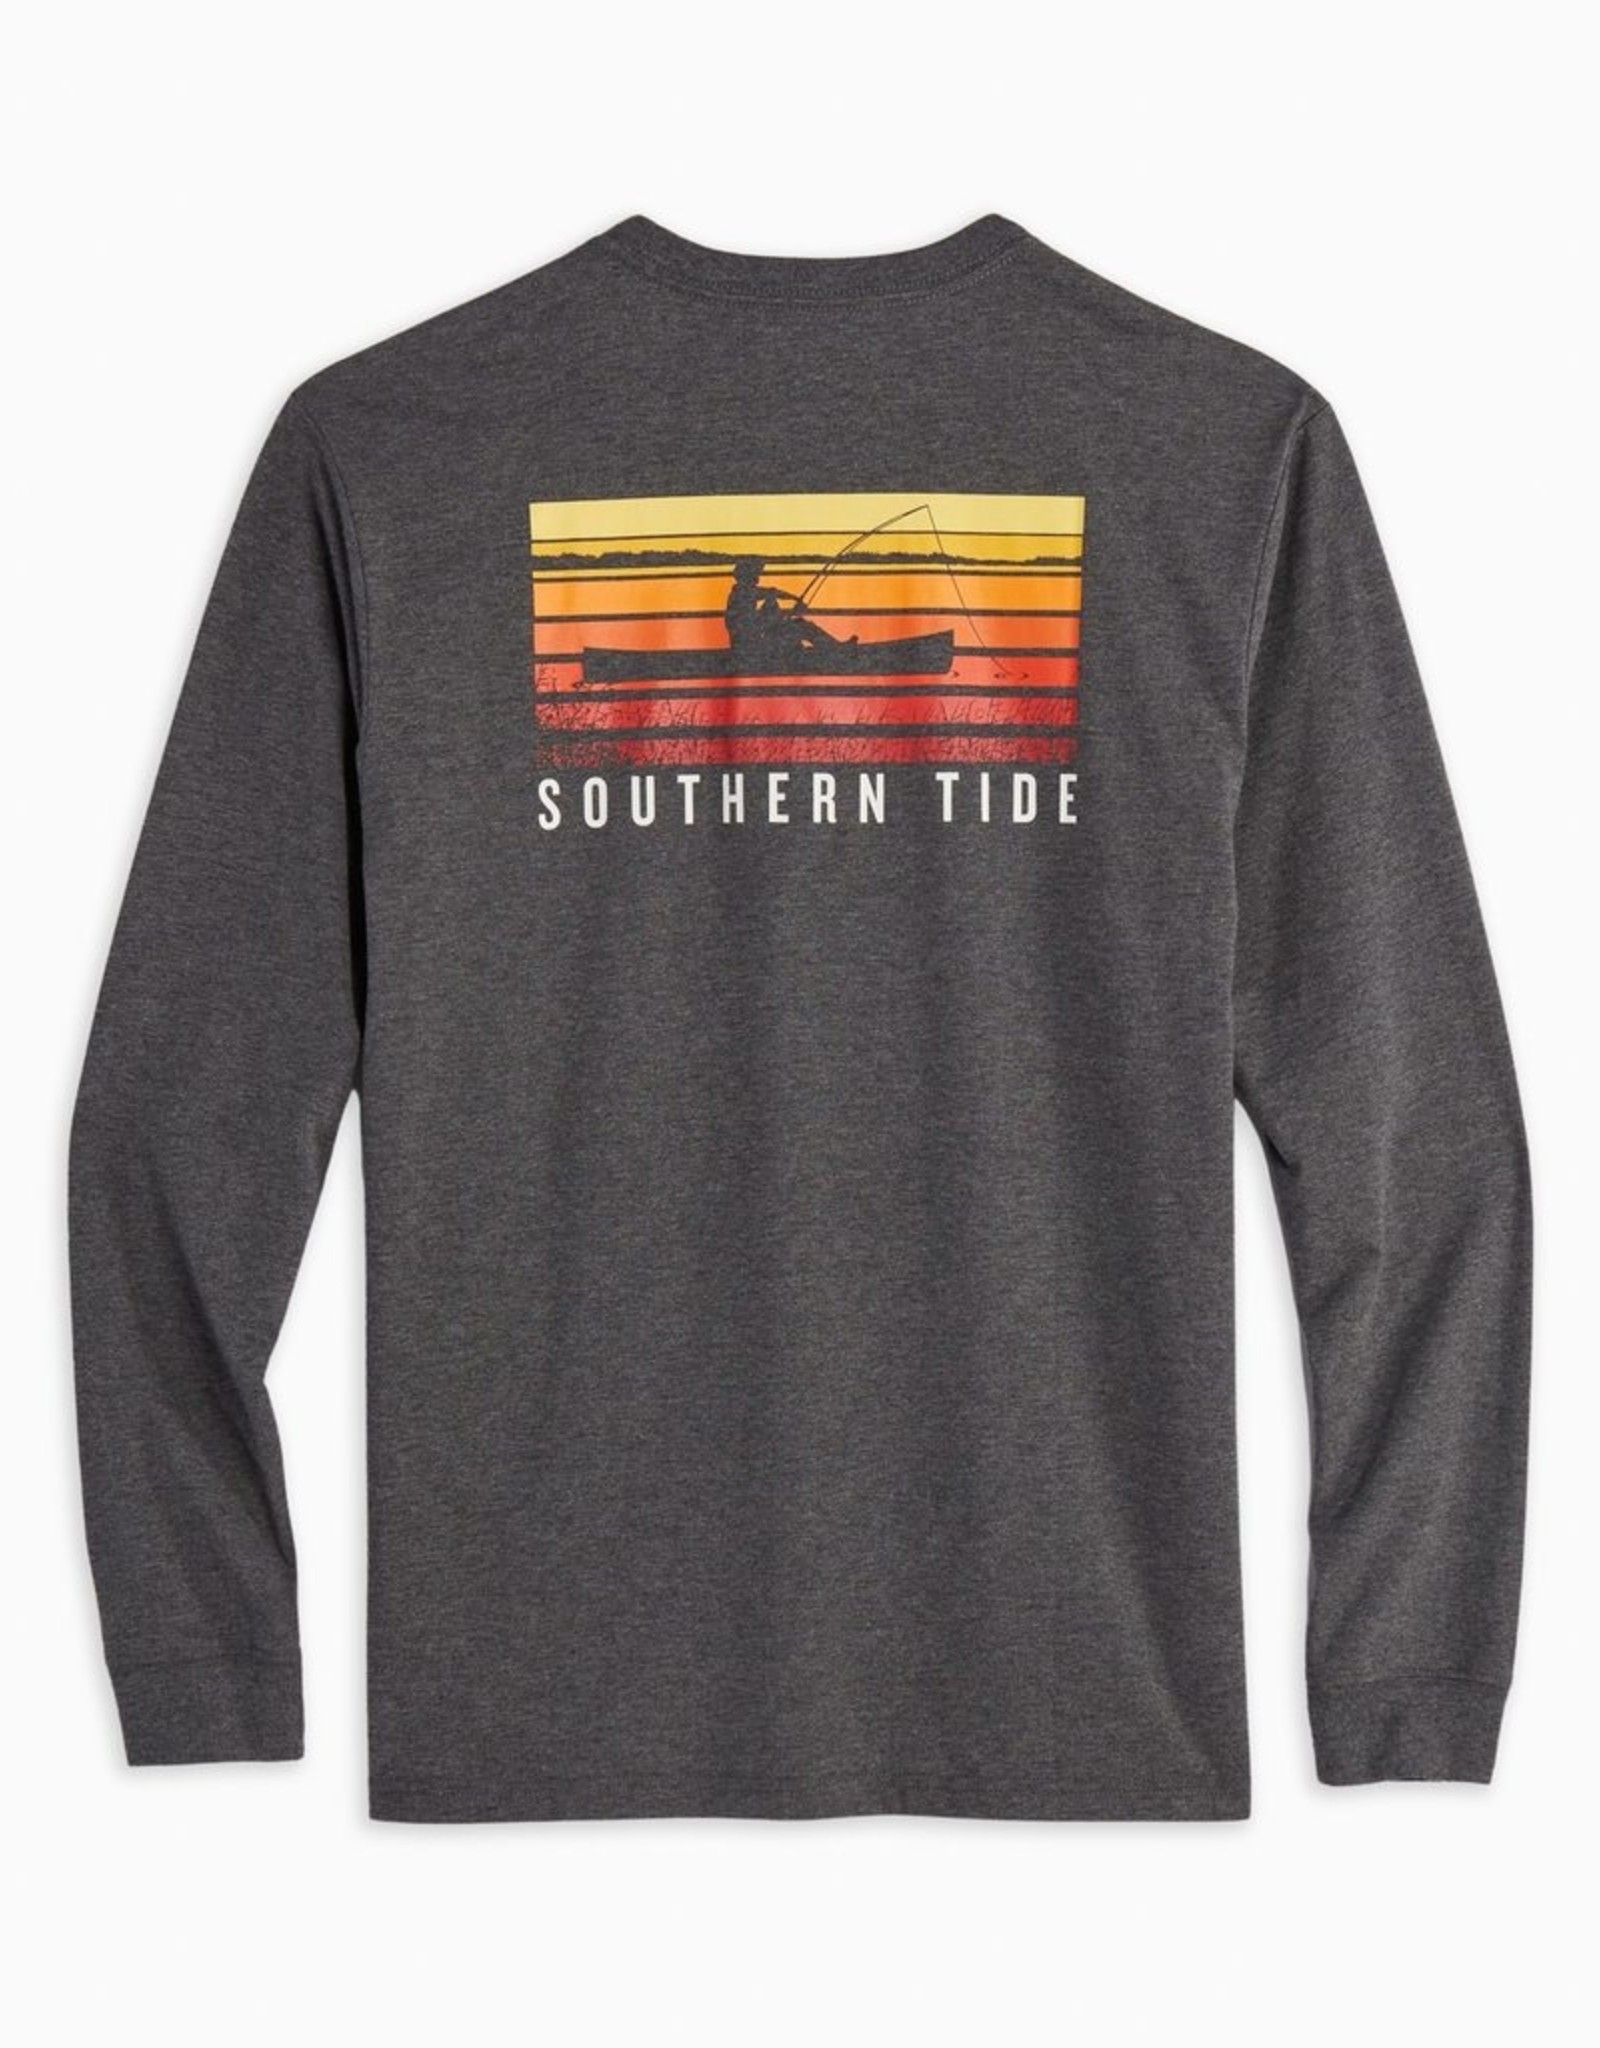 Southern Tide Early Morning Fishing Tee